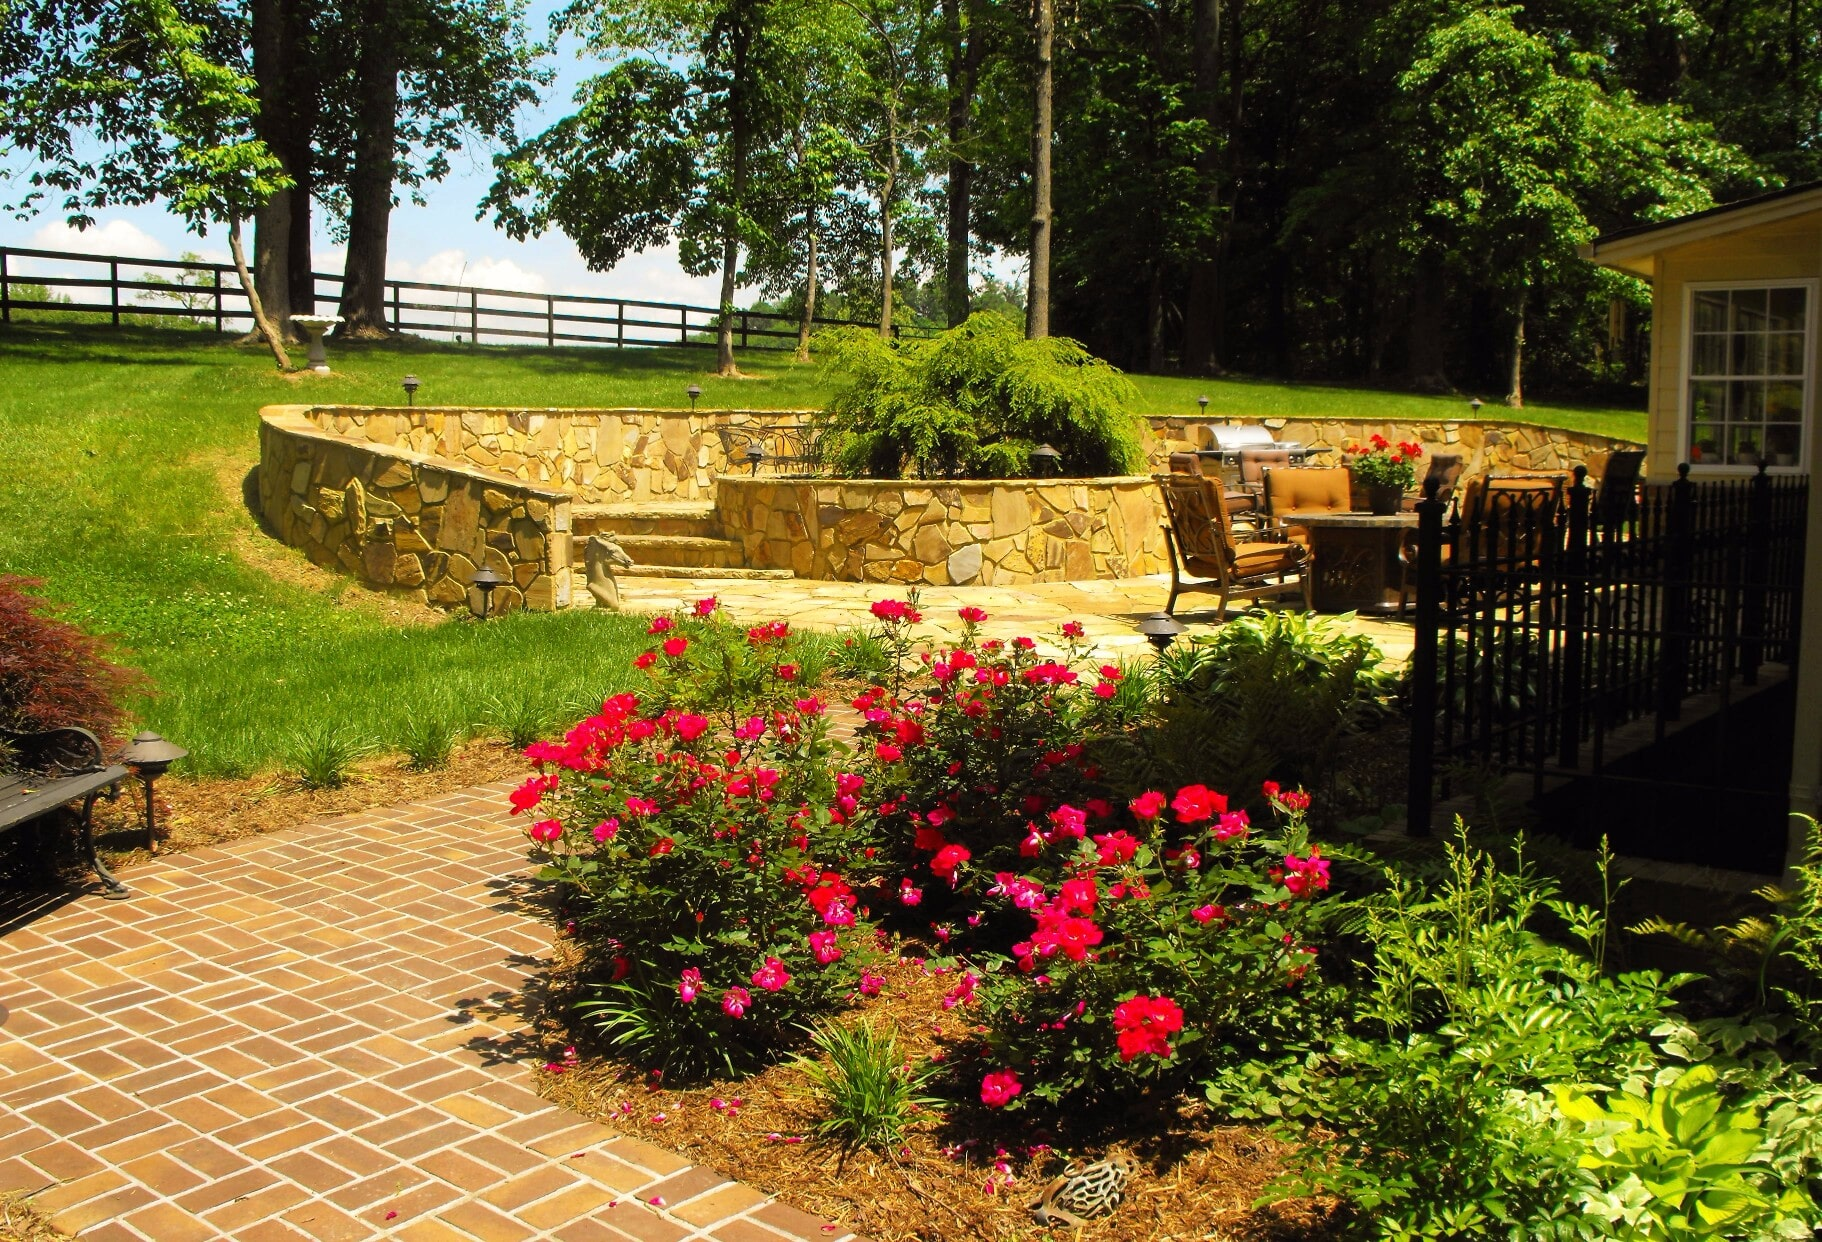 Stapleton landscape architecture pllc nickelsville va for Landscape architects directory